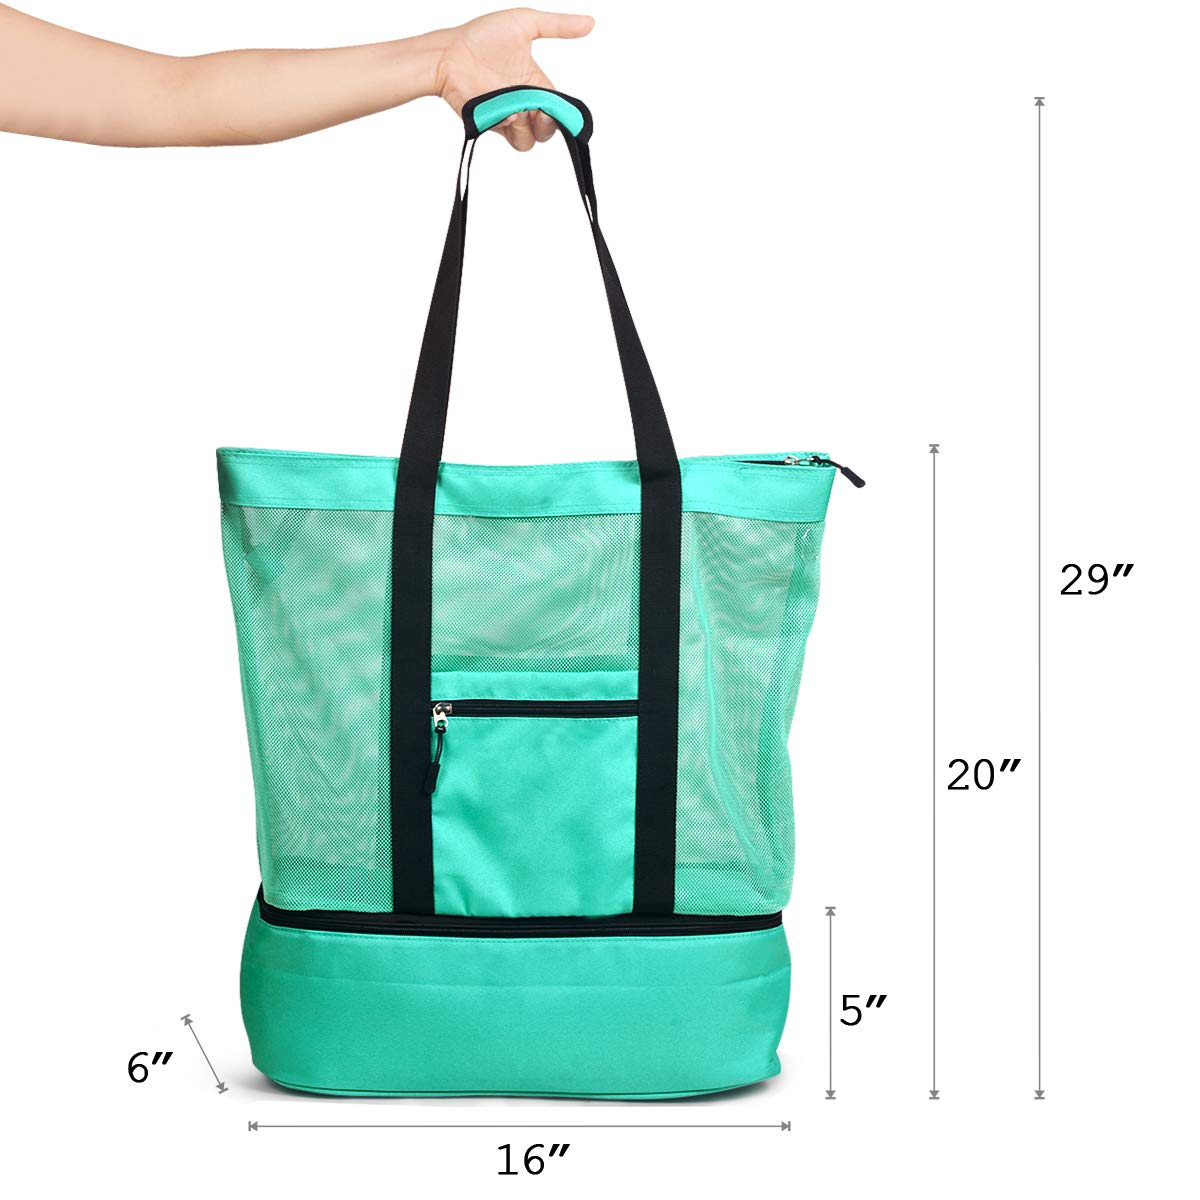 LYH Mesh Beach Bag and Totes Insulated Picnic Cooler Pool Bag with Zipper Top for Women Kids Student,(Green)